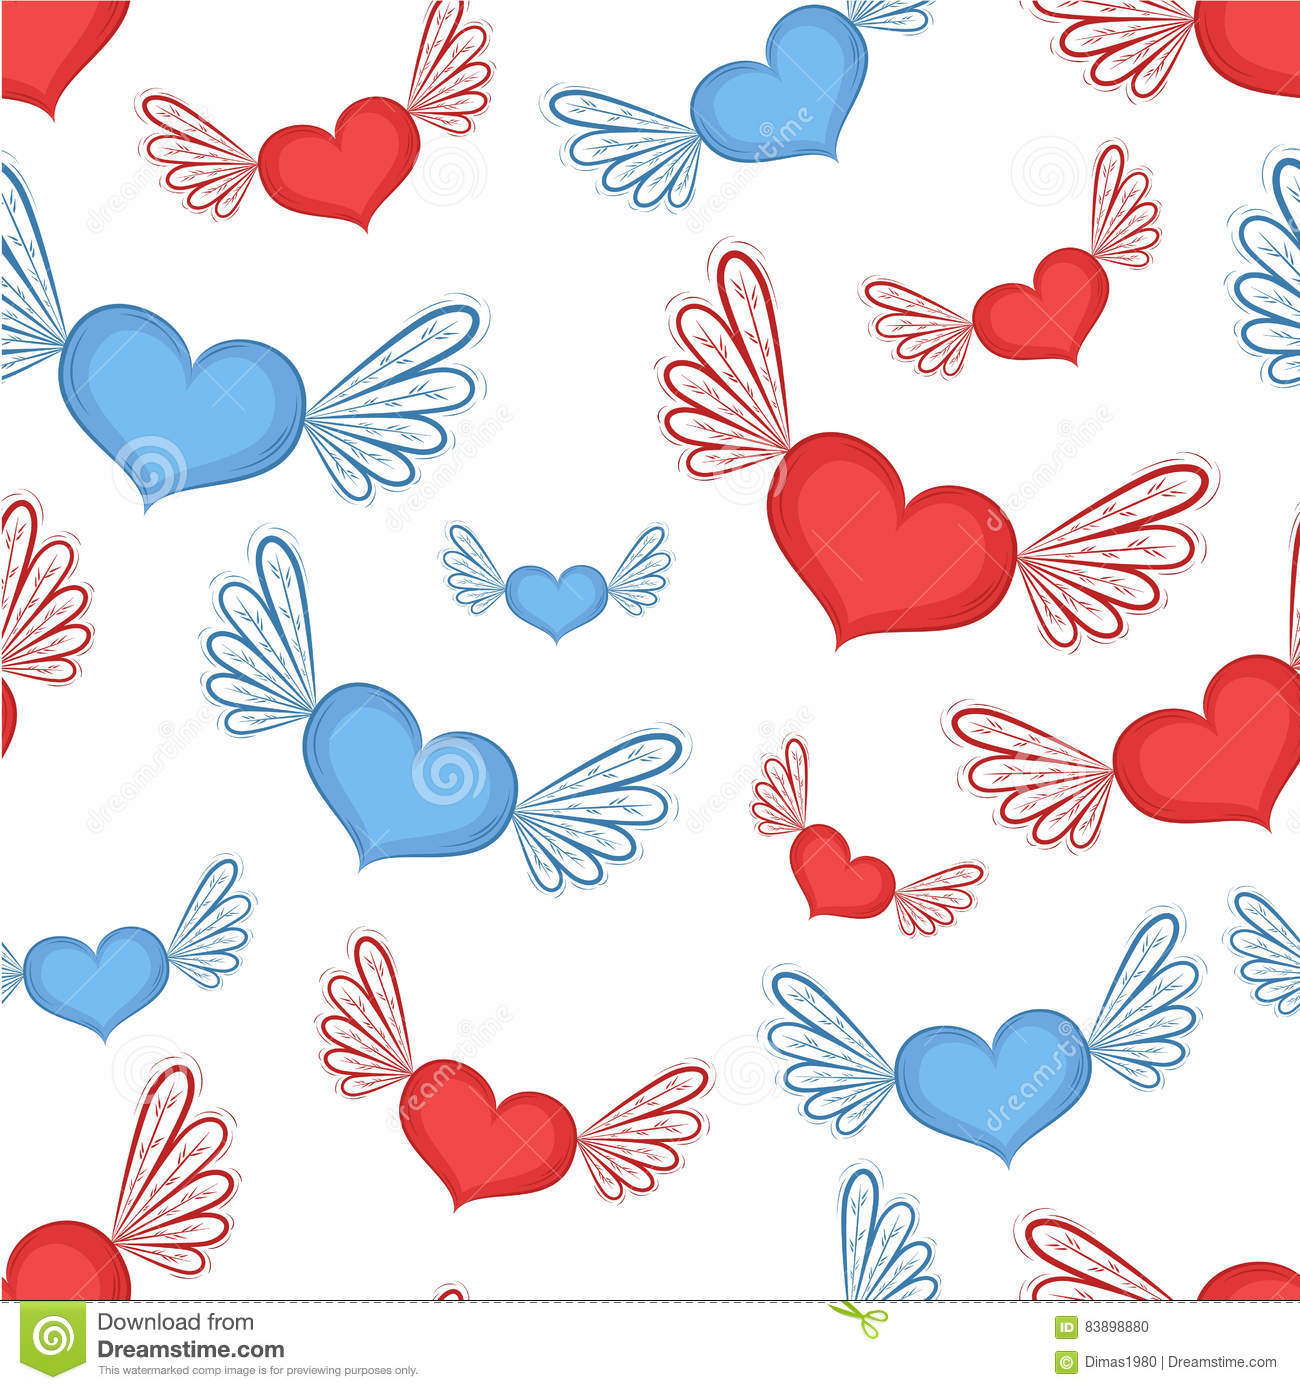 Happy valentines day clipart with blue hearts clip art freeuse library Happy Valentines Day Seamless Pattern Stock Vector - Image: 83898880 clip art freeuse library